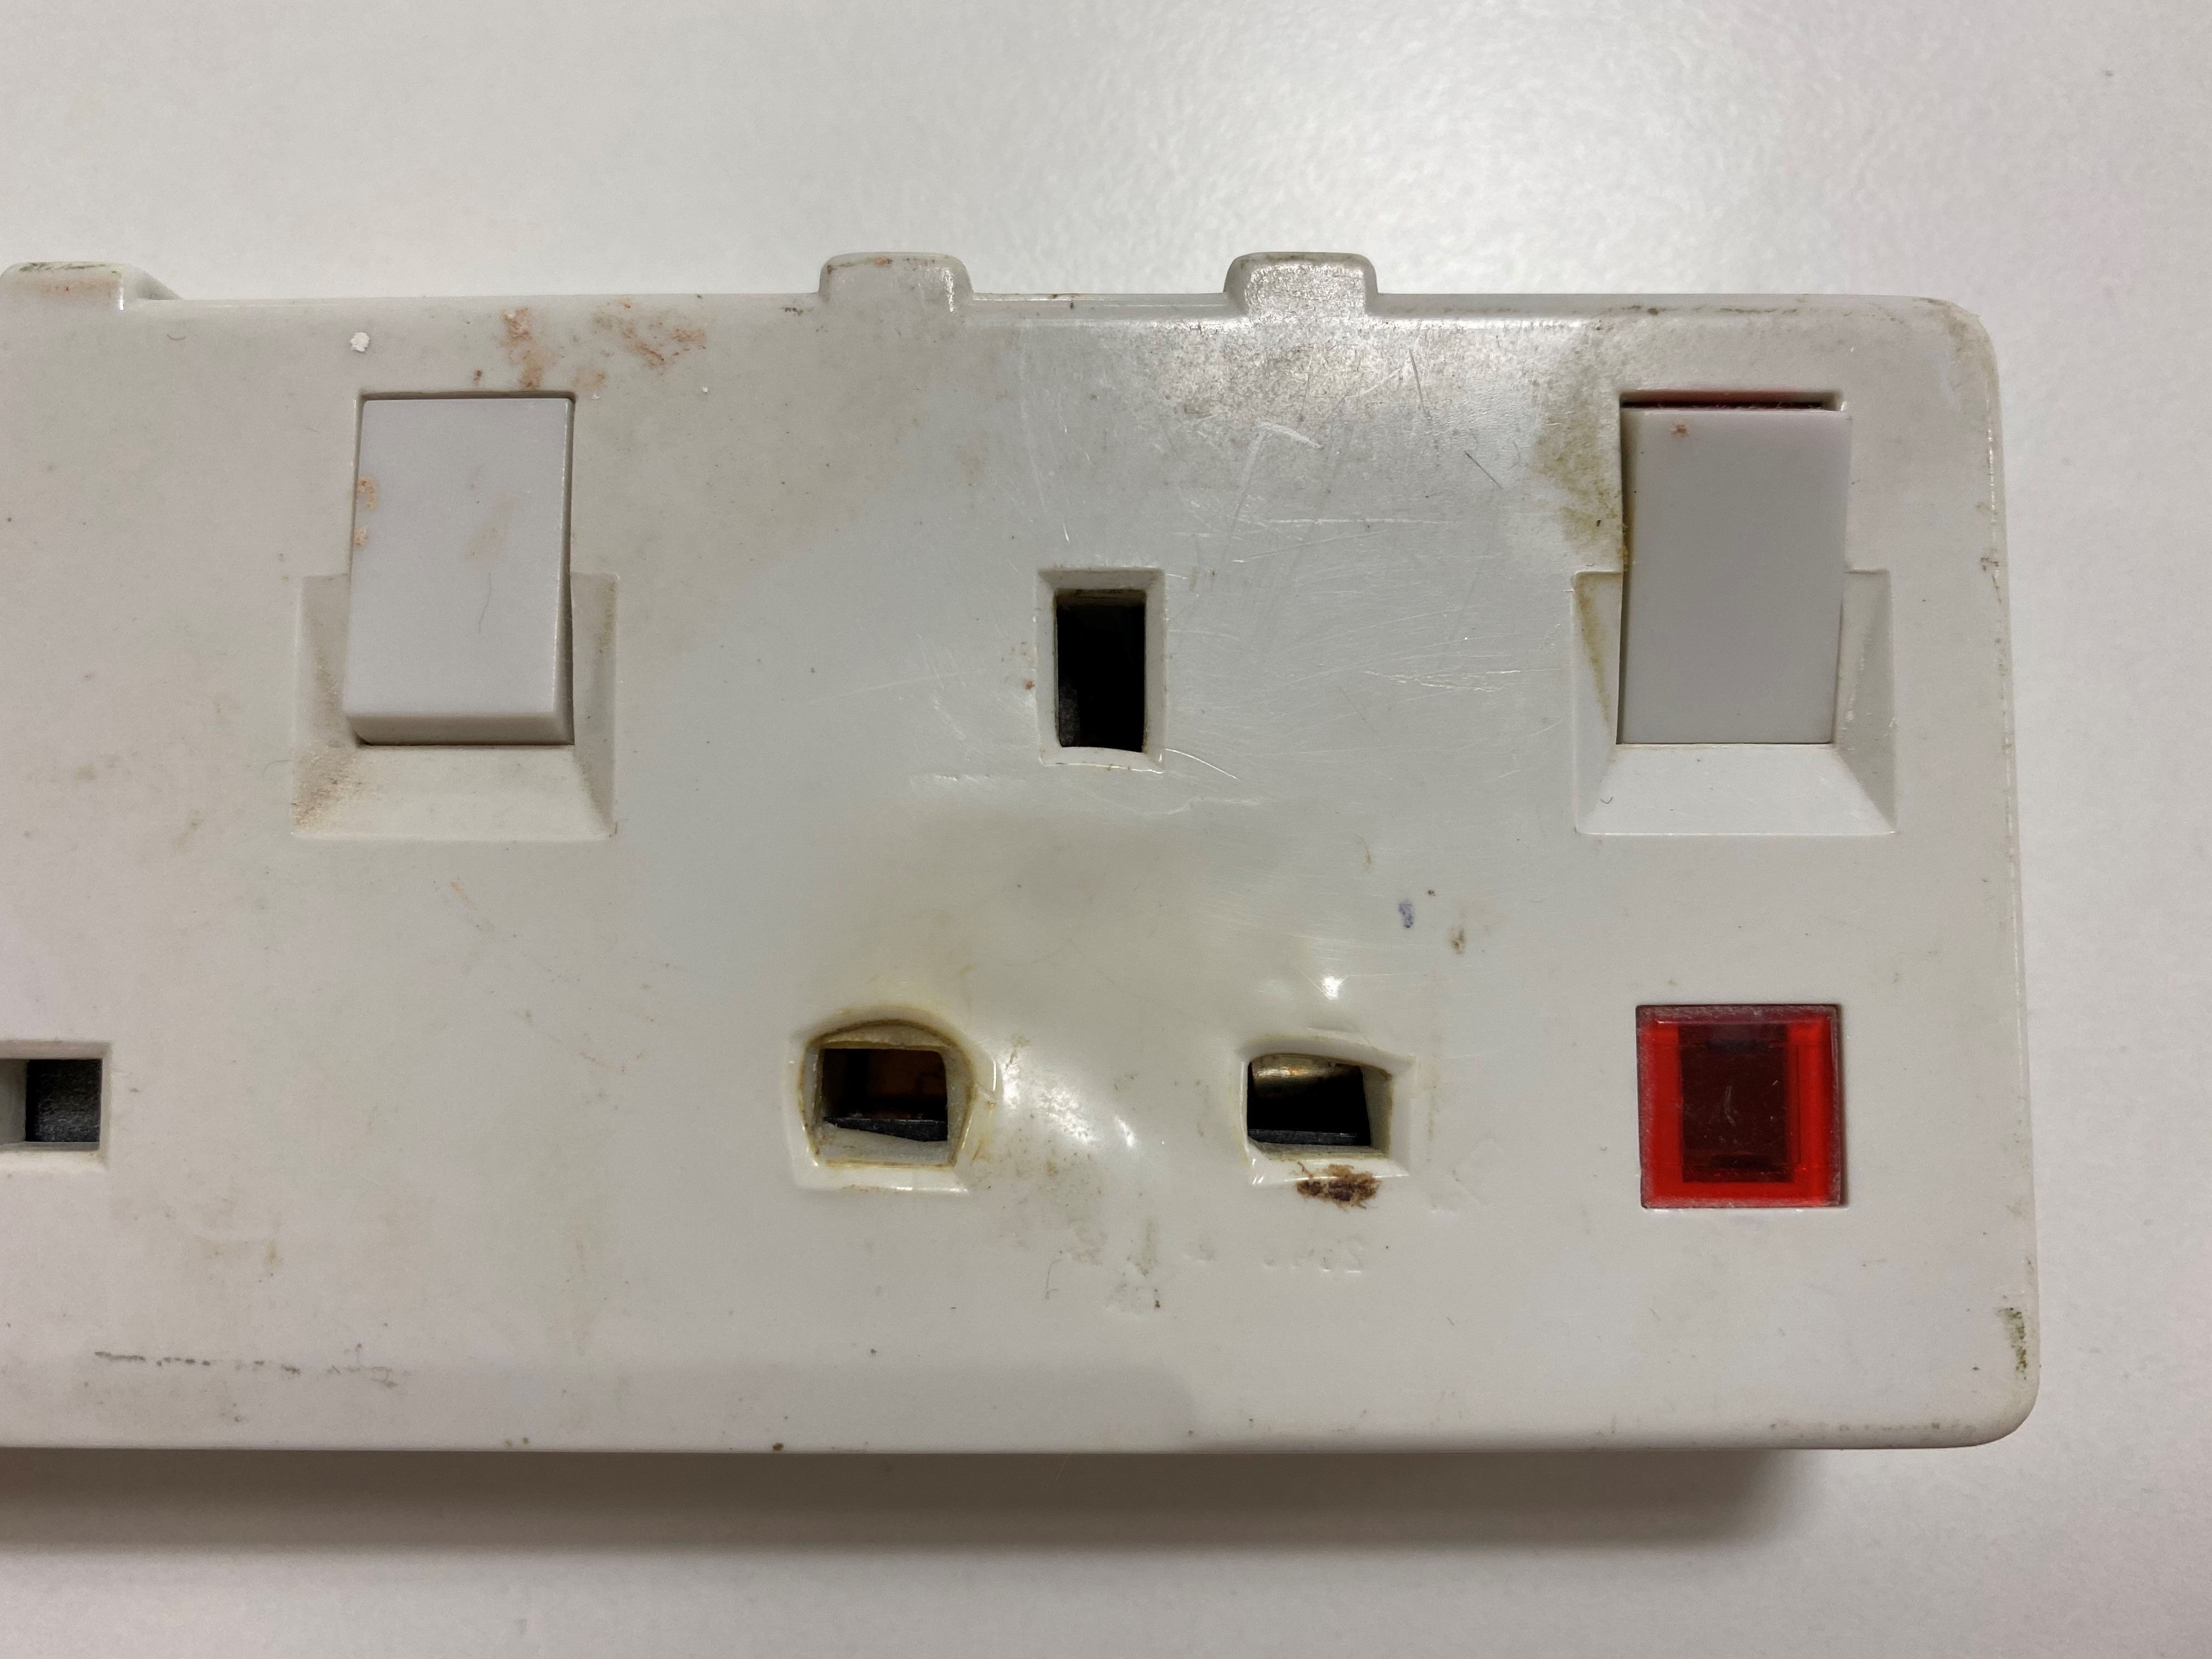 A photo of the damaged socket, caused by the overheating of a commercial tumble dryer